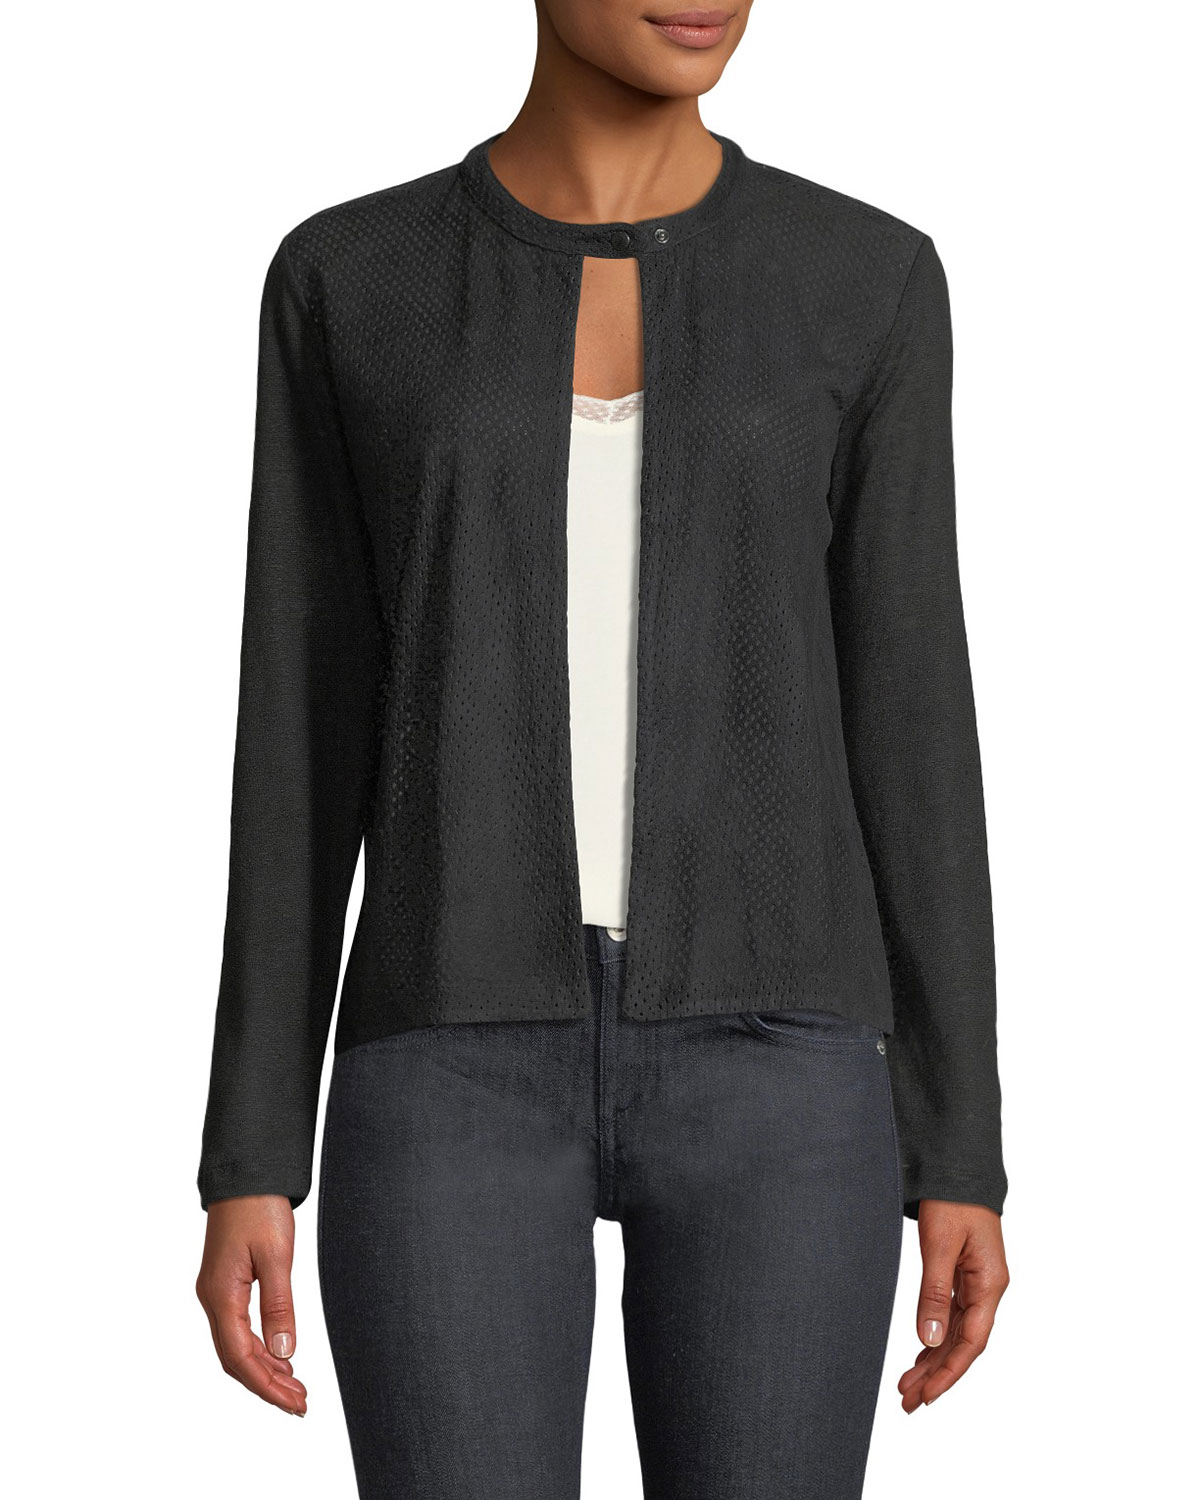 PERFORATED SUEDE & LINEN COMBO CARDIGAN from Neiman Marcus